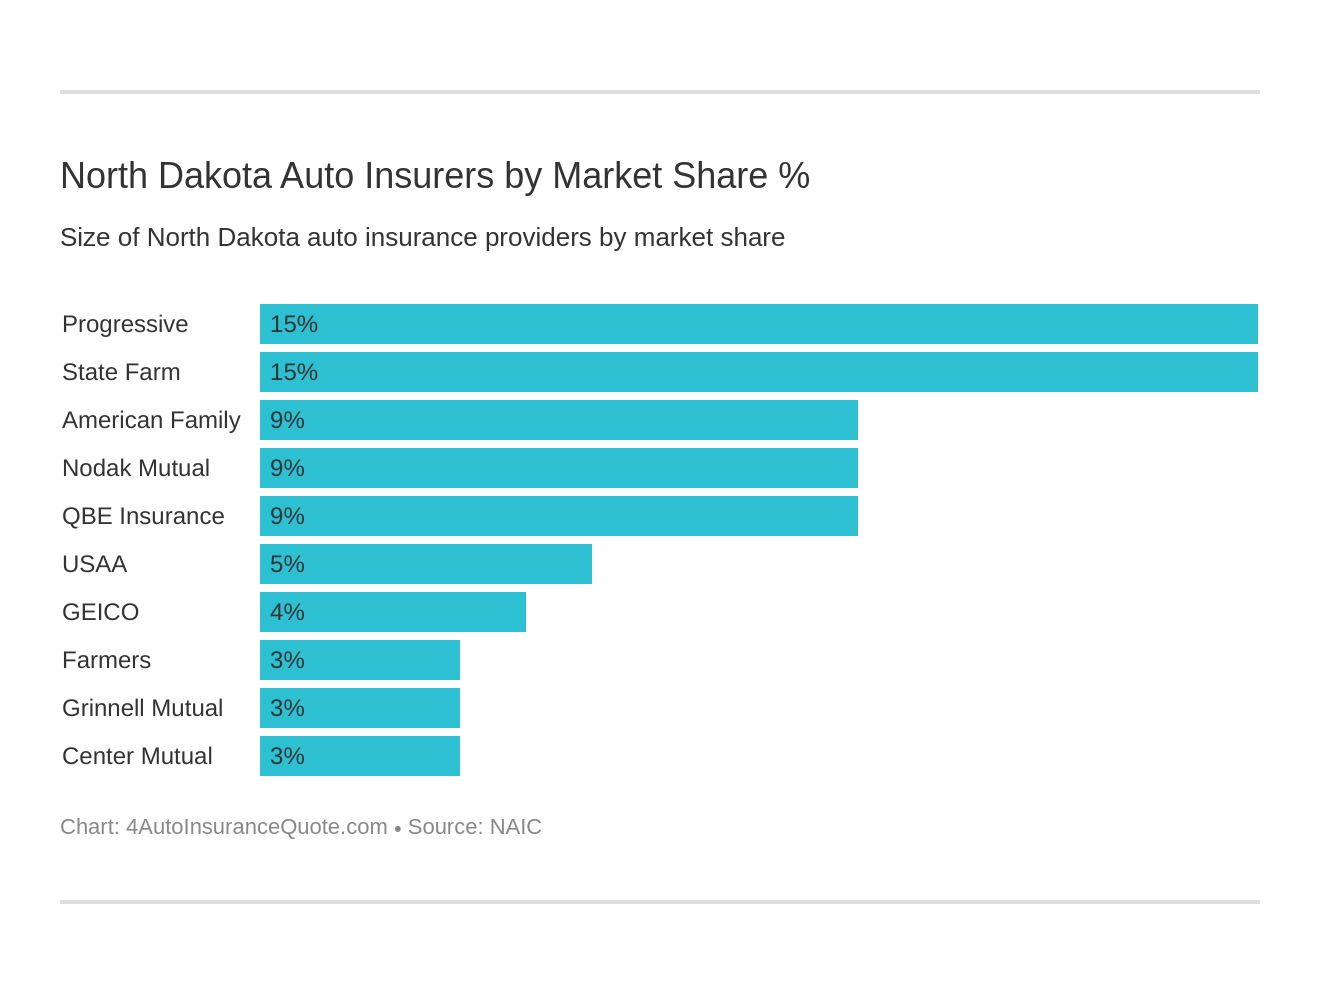 North Dakota Auto Insurers by Market Share %